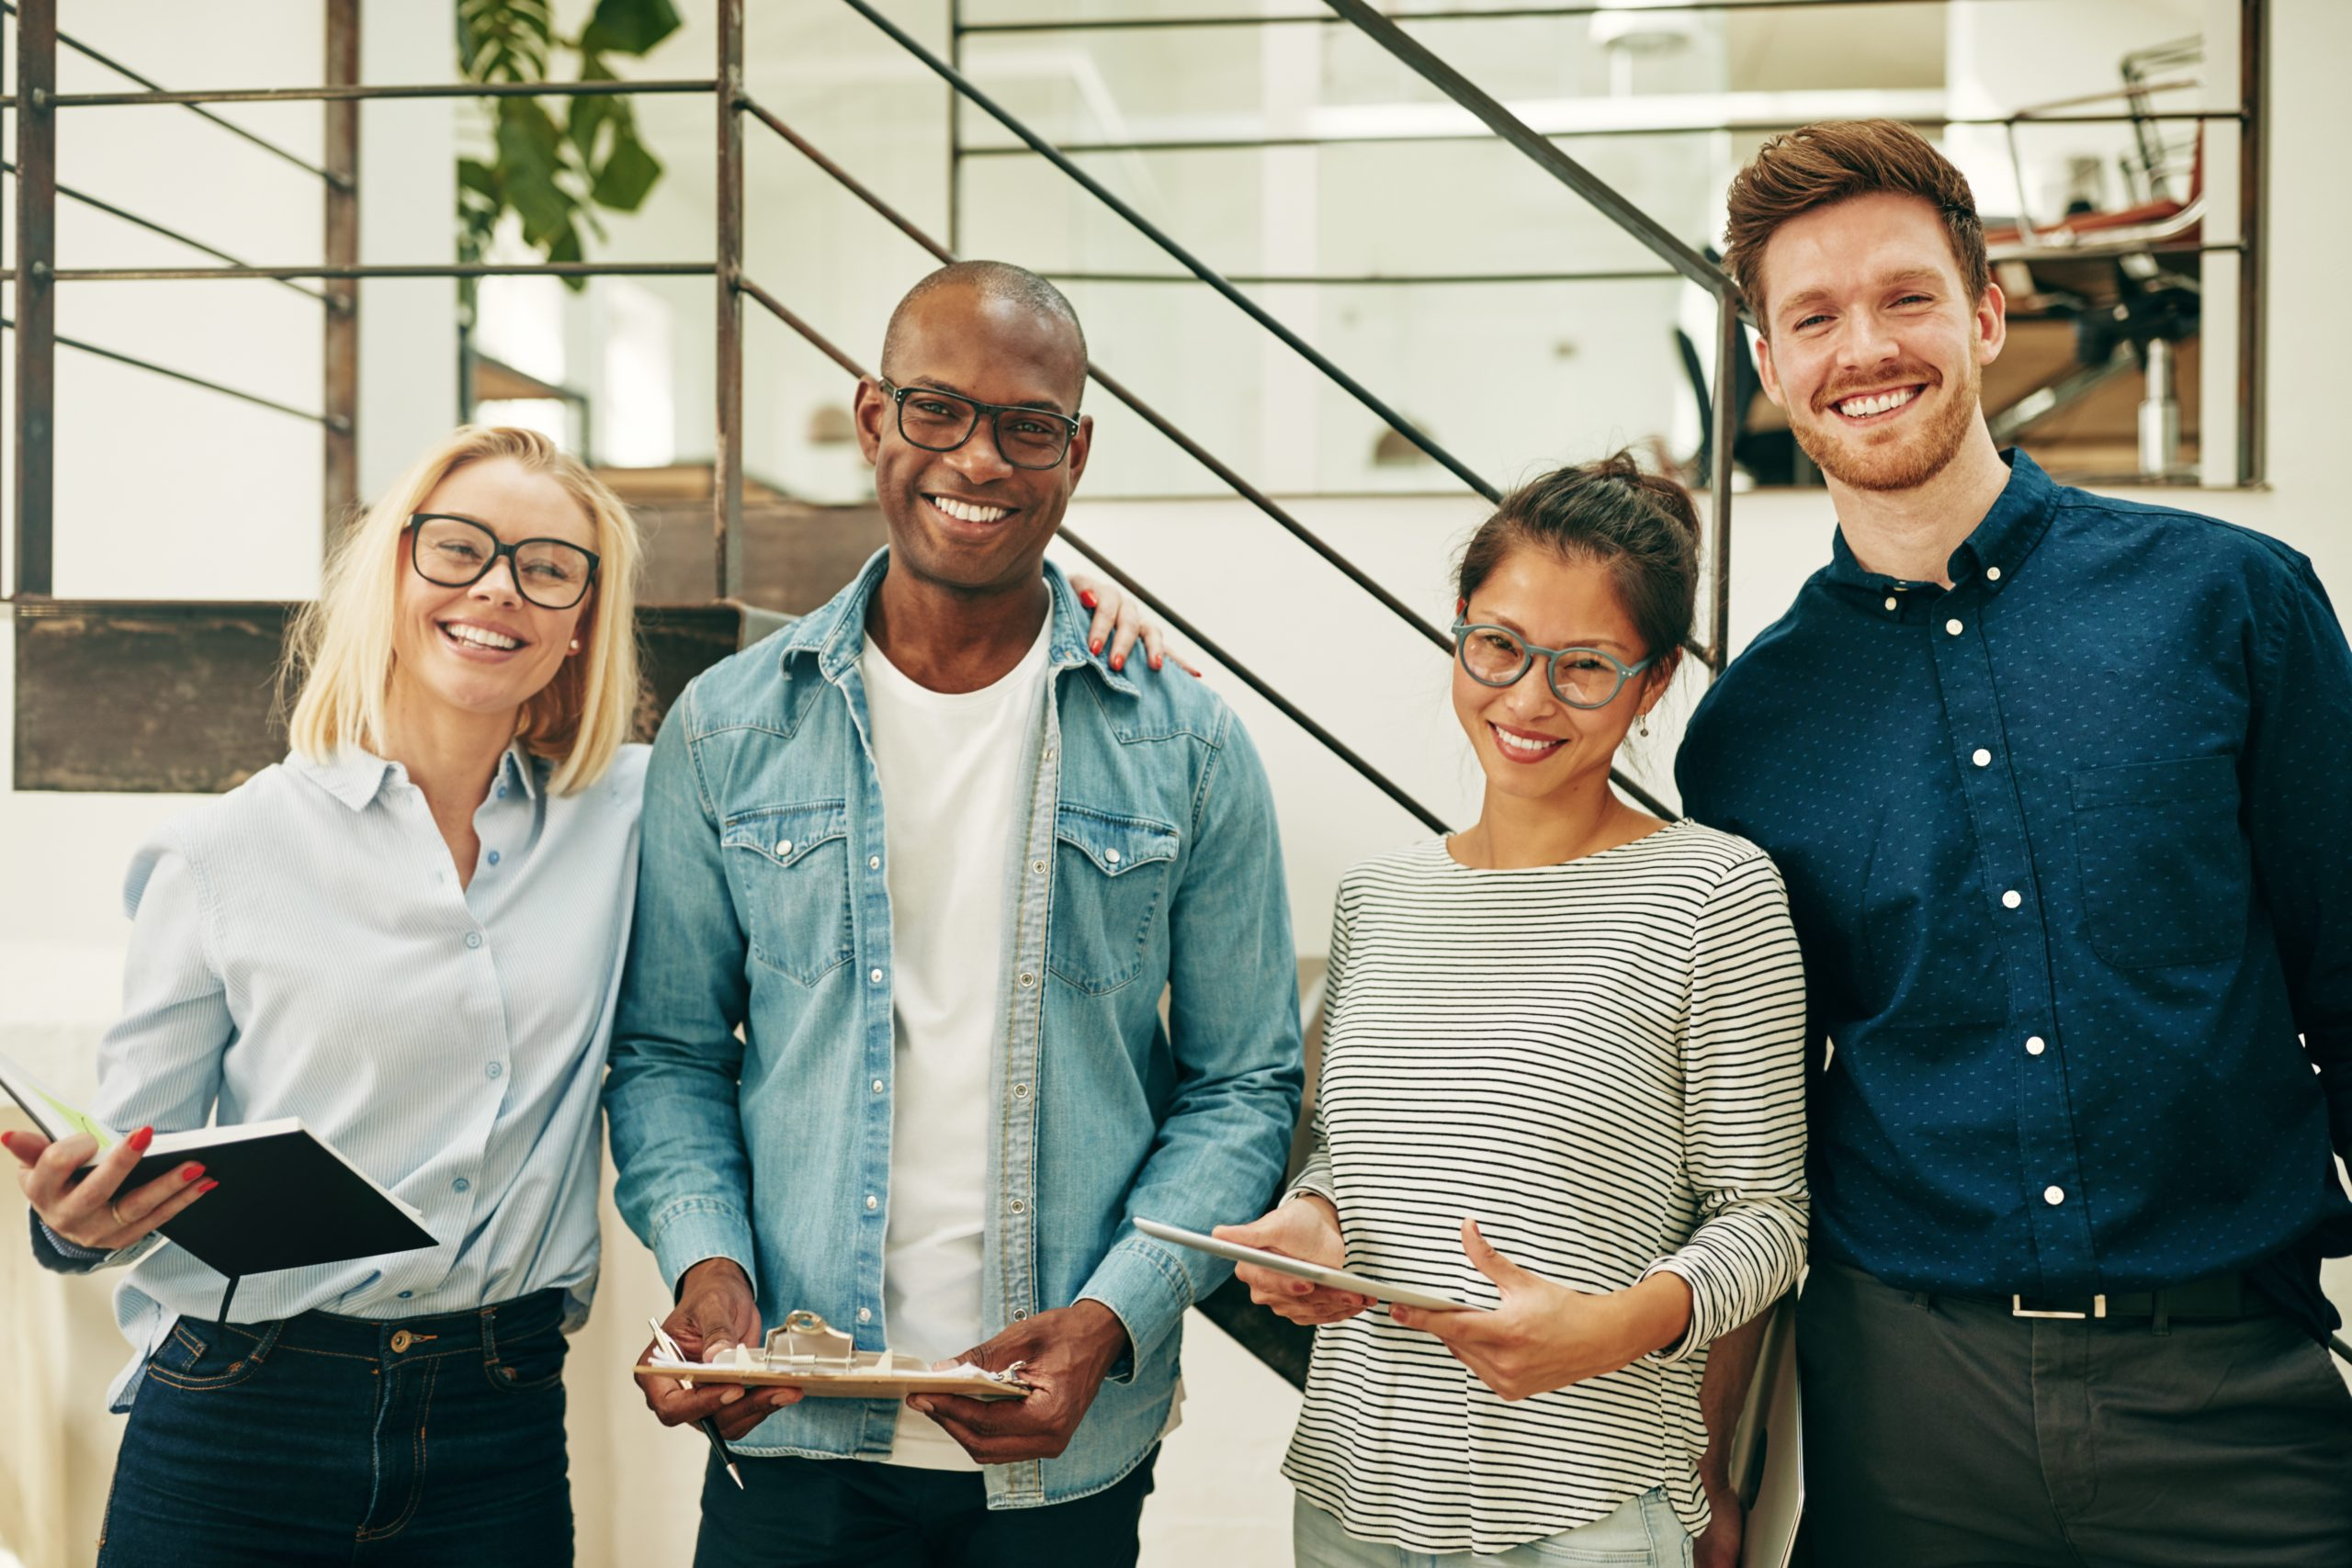 Group of diverse young businesspeople laughing together while standing side by side in a bright modern office